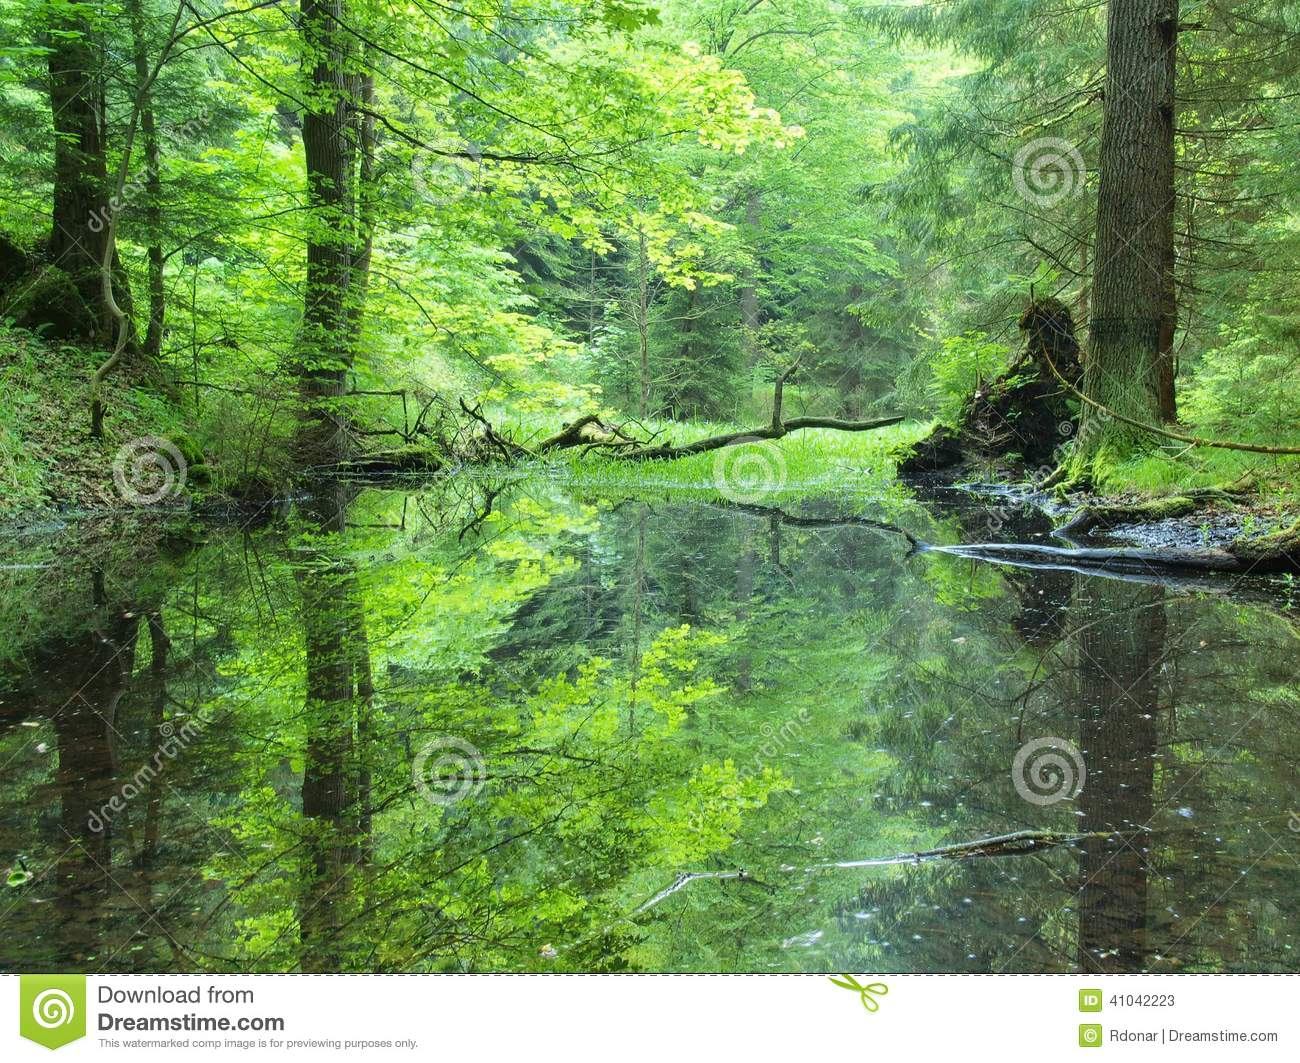 Swamp In Forest  Fresh Spring Green Color  Bended Branches Above Water  Reflection In Water